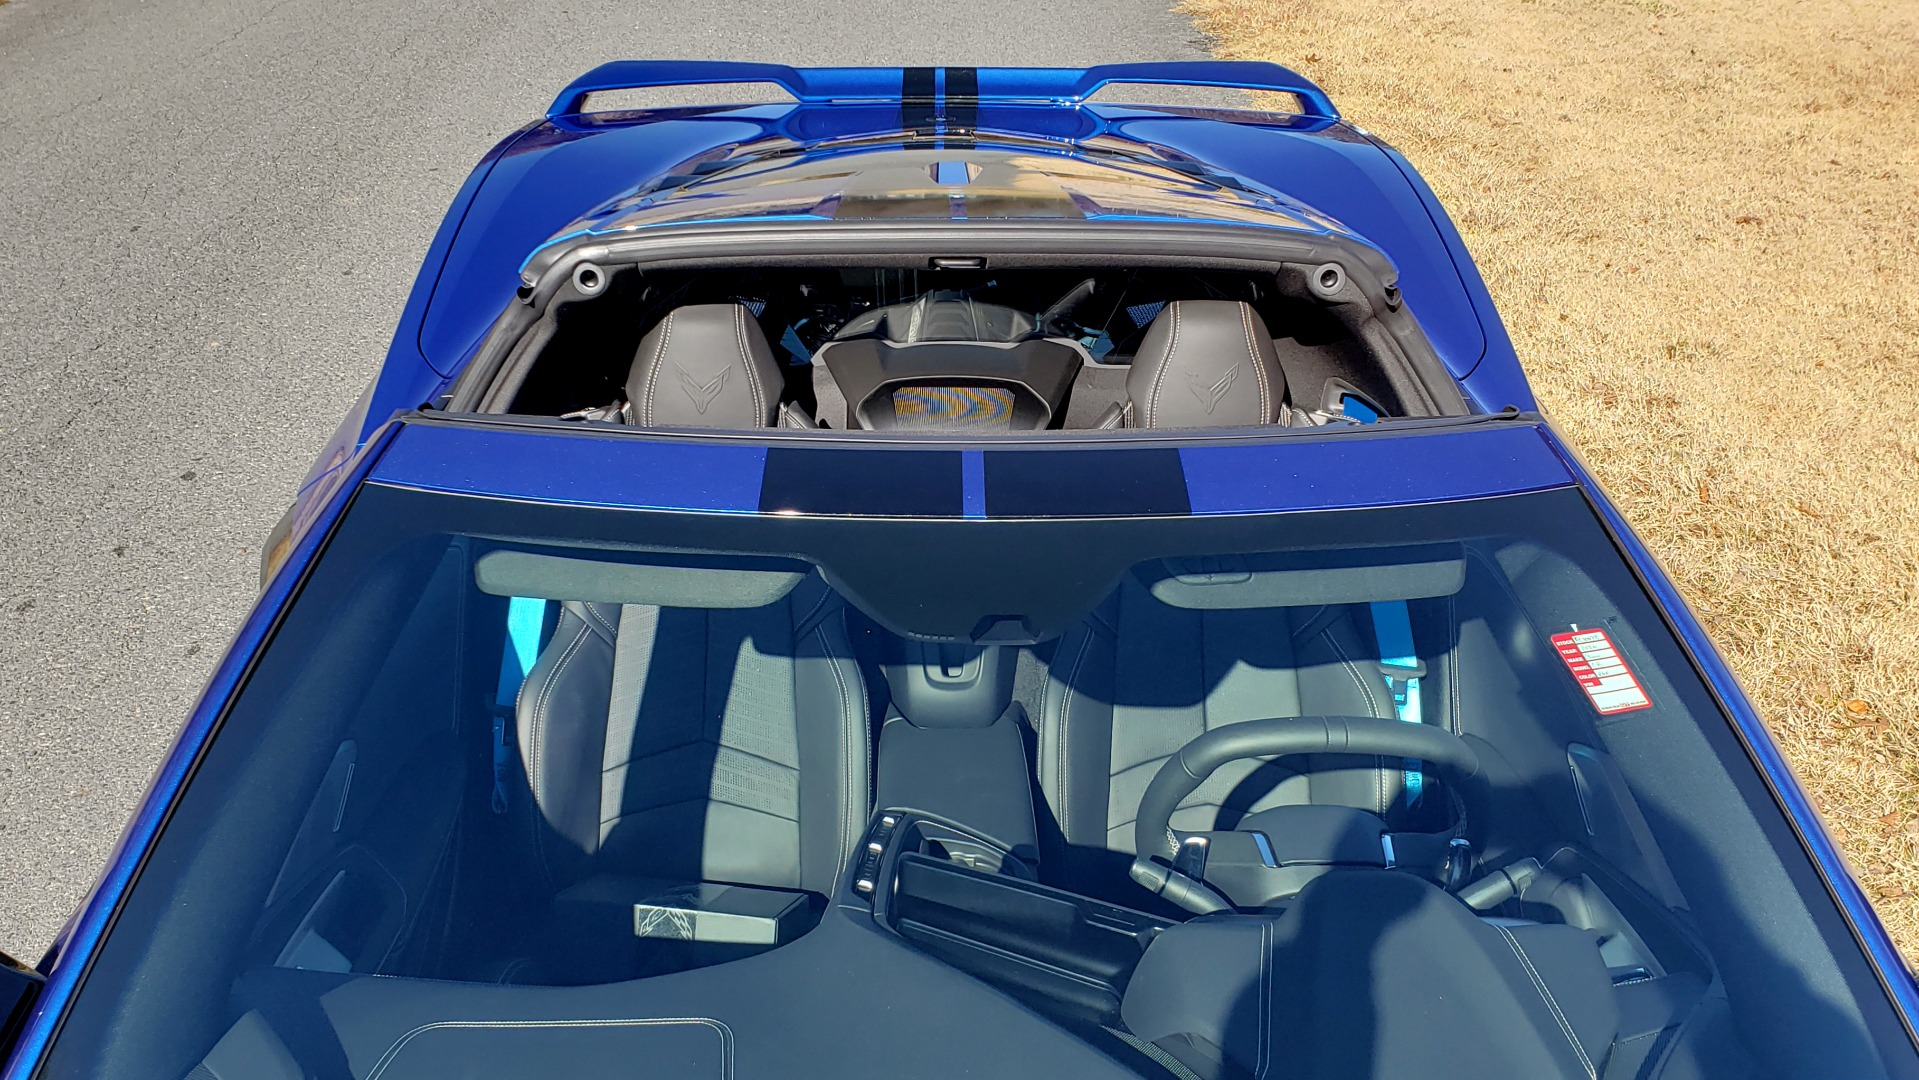 Used 2020 Chevrolet C8 CORVETTE STINGRAY 2LT COUPE / NAV / HUD / BOSE / GT2 SEATS / FRONT LIFT / REARVIEW for sale Sold at Formula Imports in Charlotte NC 28227 19